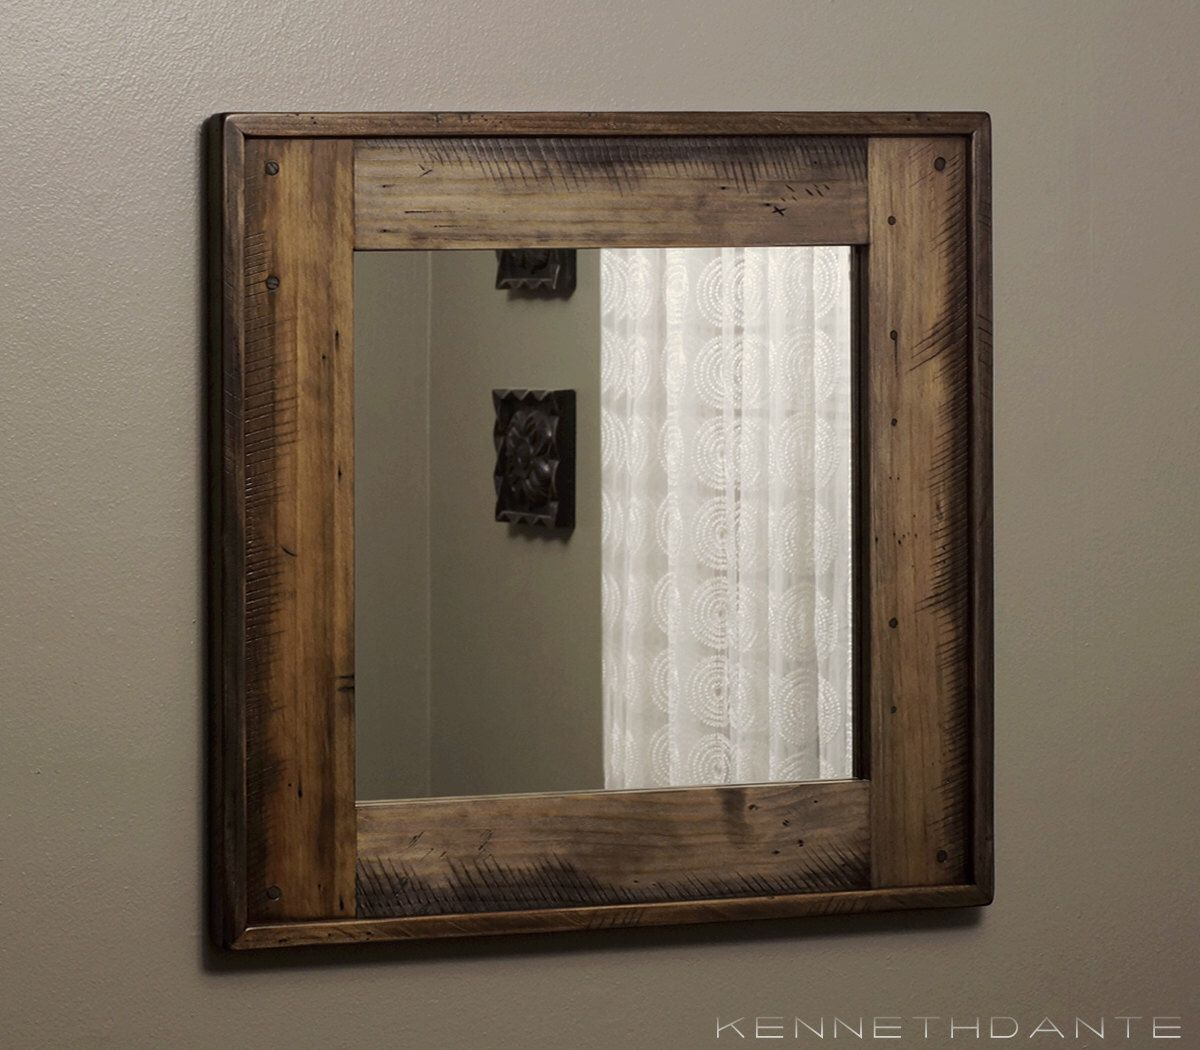 Bathroom mirrors wood frame - Reclaimed Wood Mirror Bathroom Mirror Brown W Earthy Neutrals Distressed Wood Frame Rustic Wall Mirror Decorative